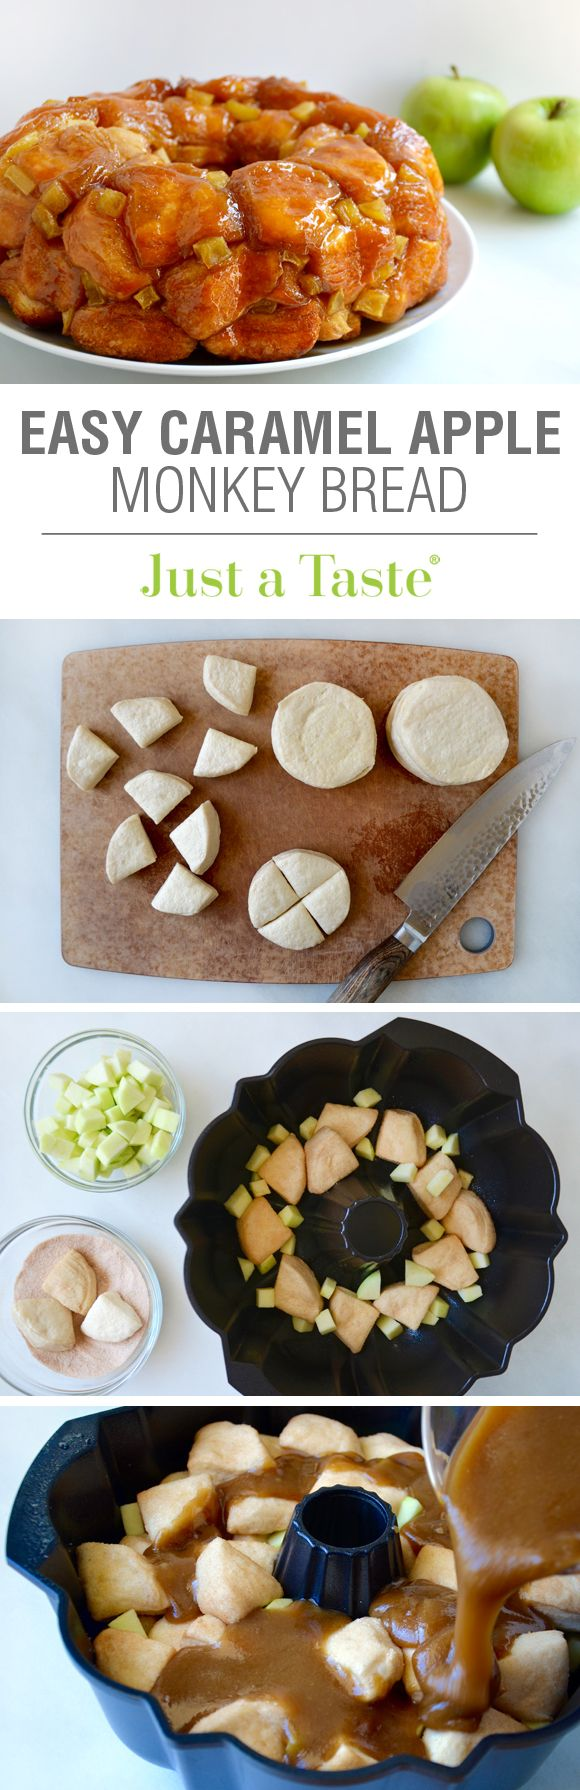 Easy Caramel Apple Monkey Bread #recipe via justataste.com: